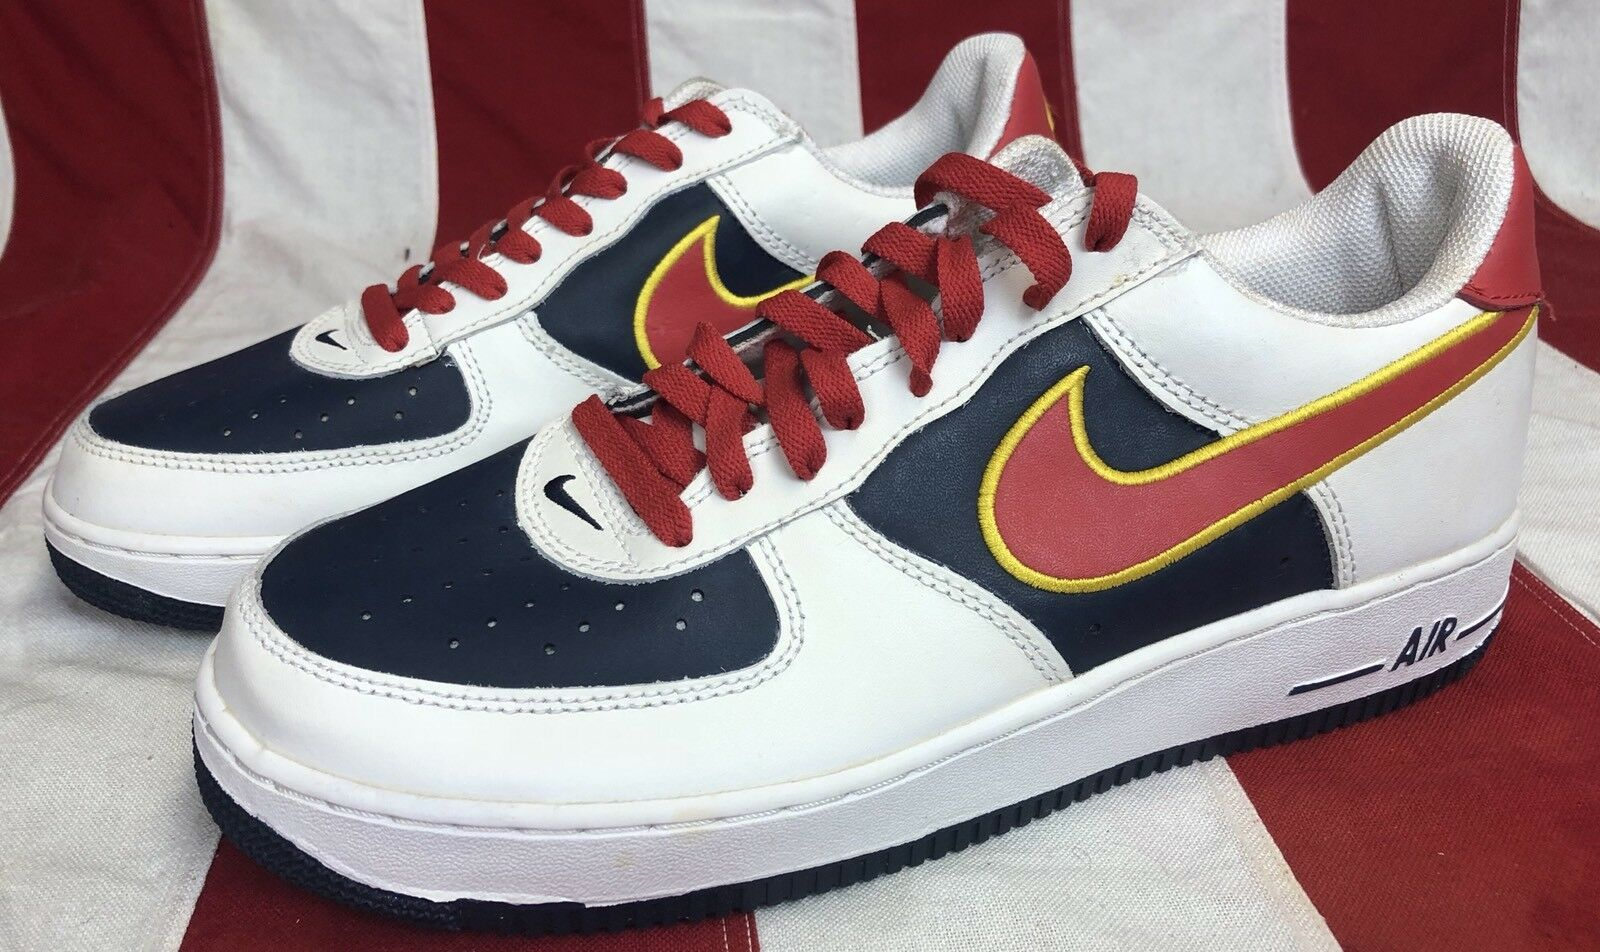 2005 NIKE AIR FORCE 1 ONE CLEVELAND CAVALIERS SZ 10.5 RED WHITE blueeE 306353-164